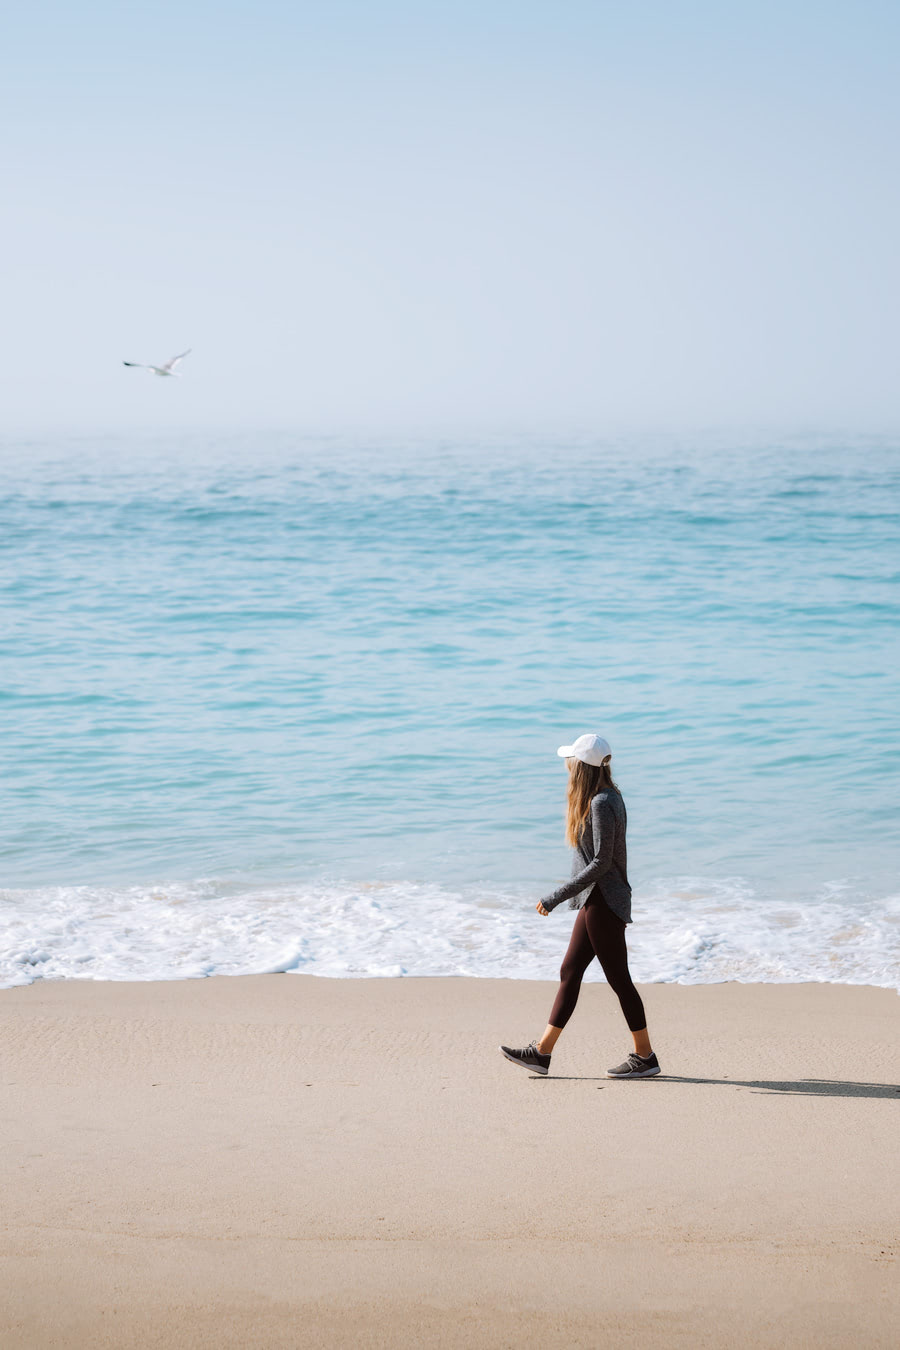 Orange County Travel Guide Everything You Need to Know- Aliso Beach